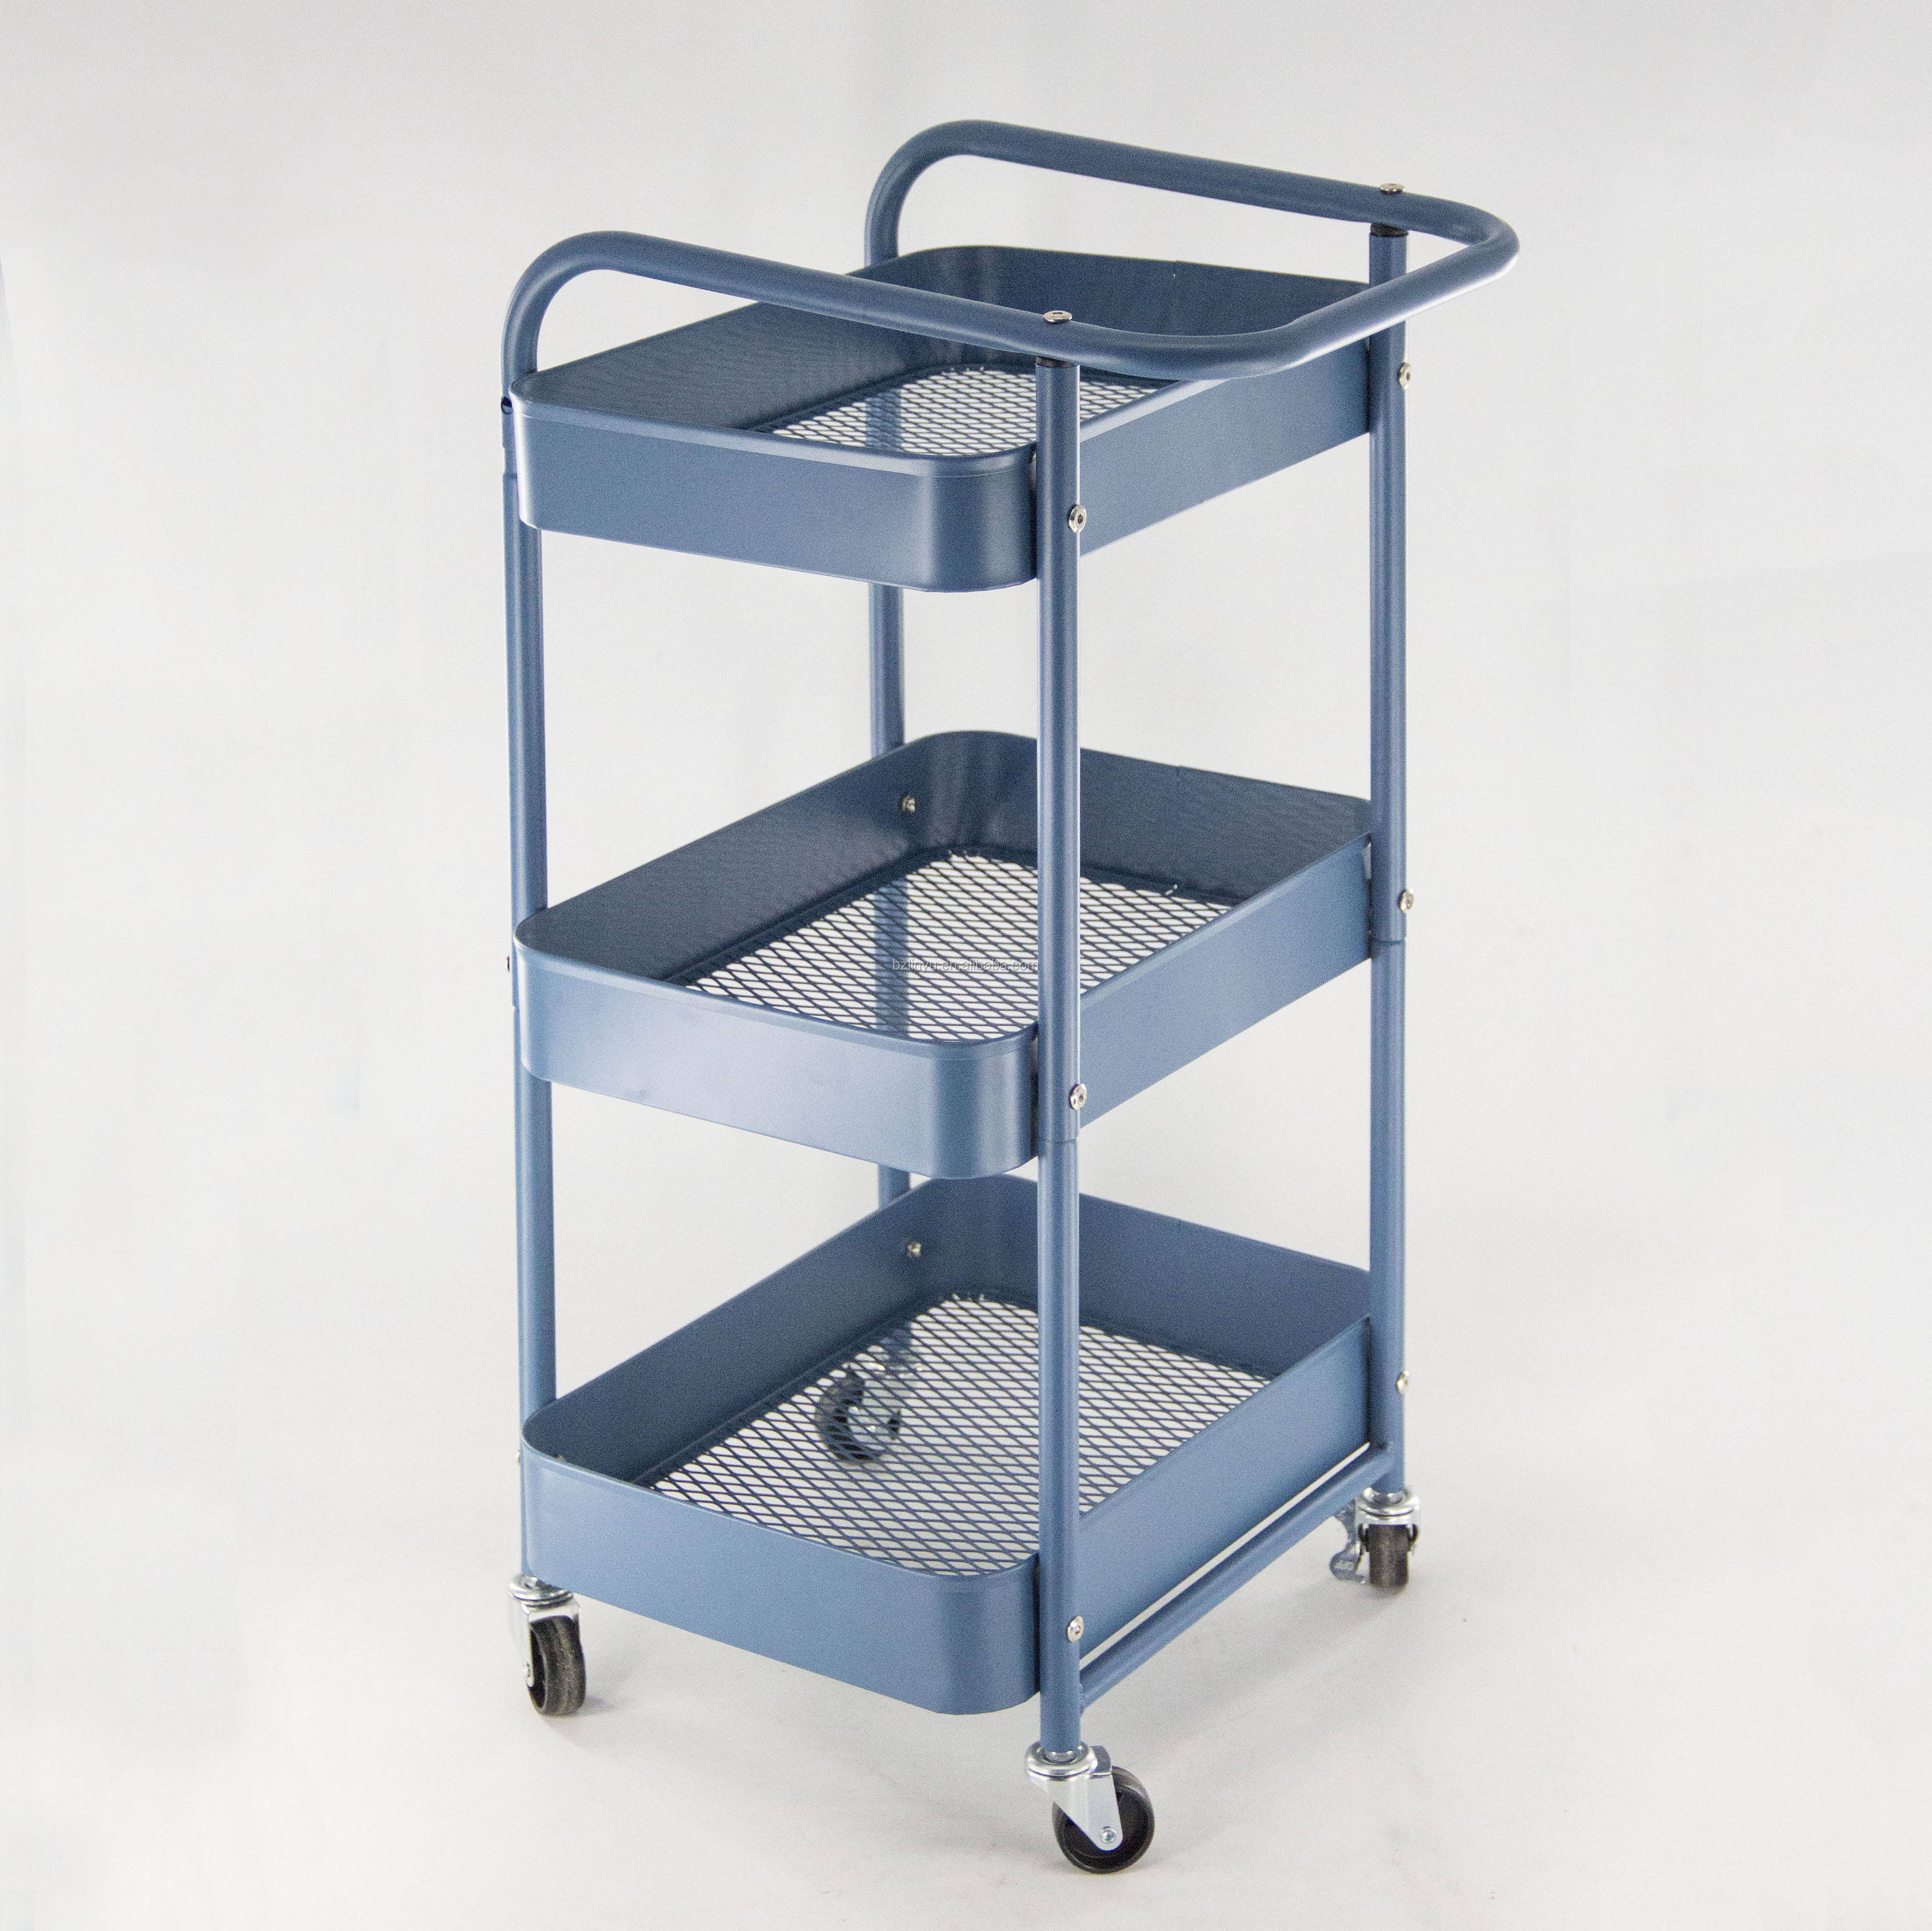 3-layer height-adjustable storage rack trolley sturdy four-wheel rolling trolley kitchen storage rack